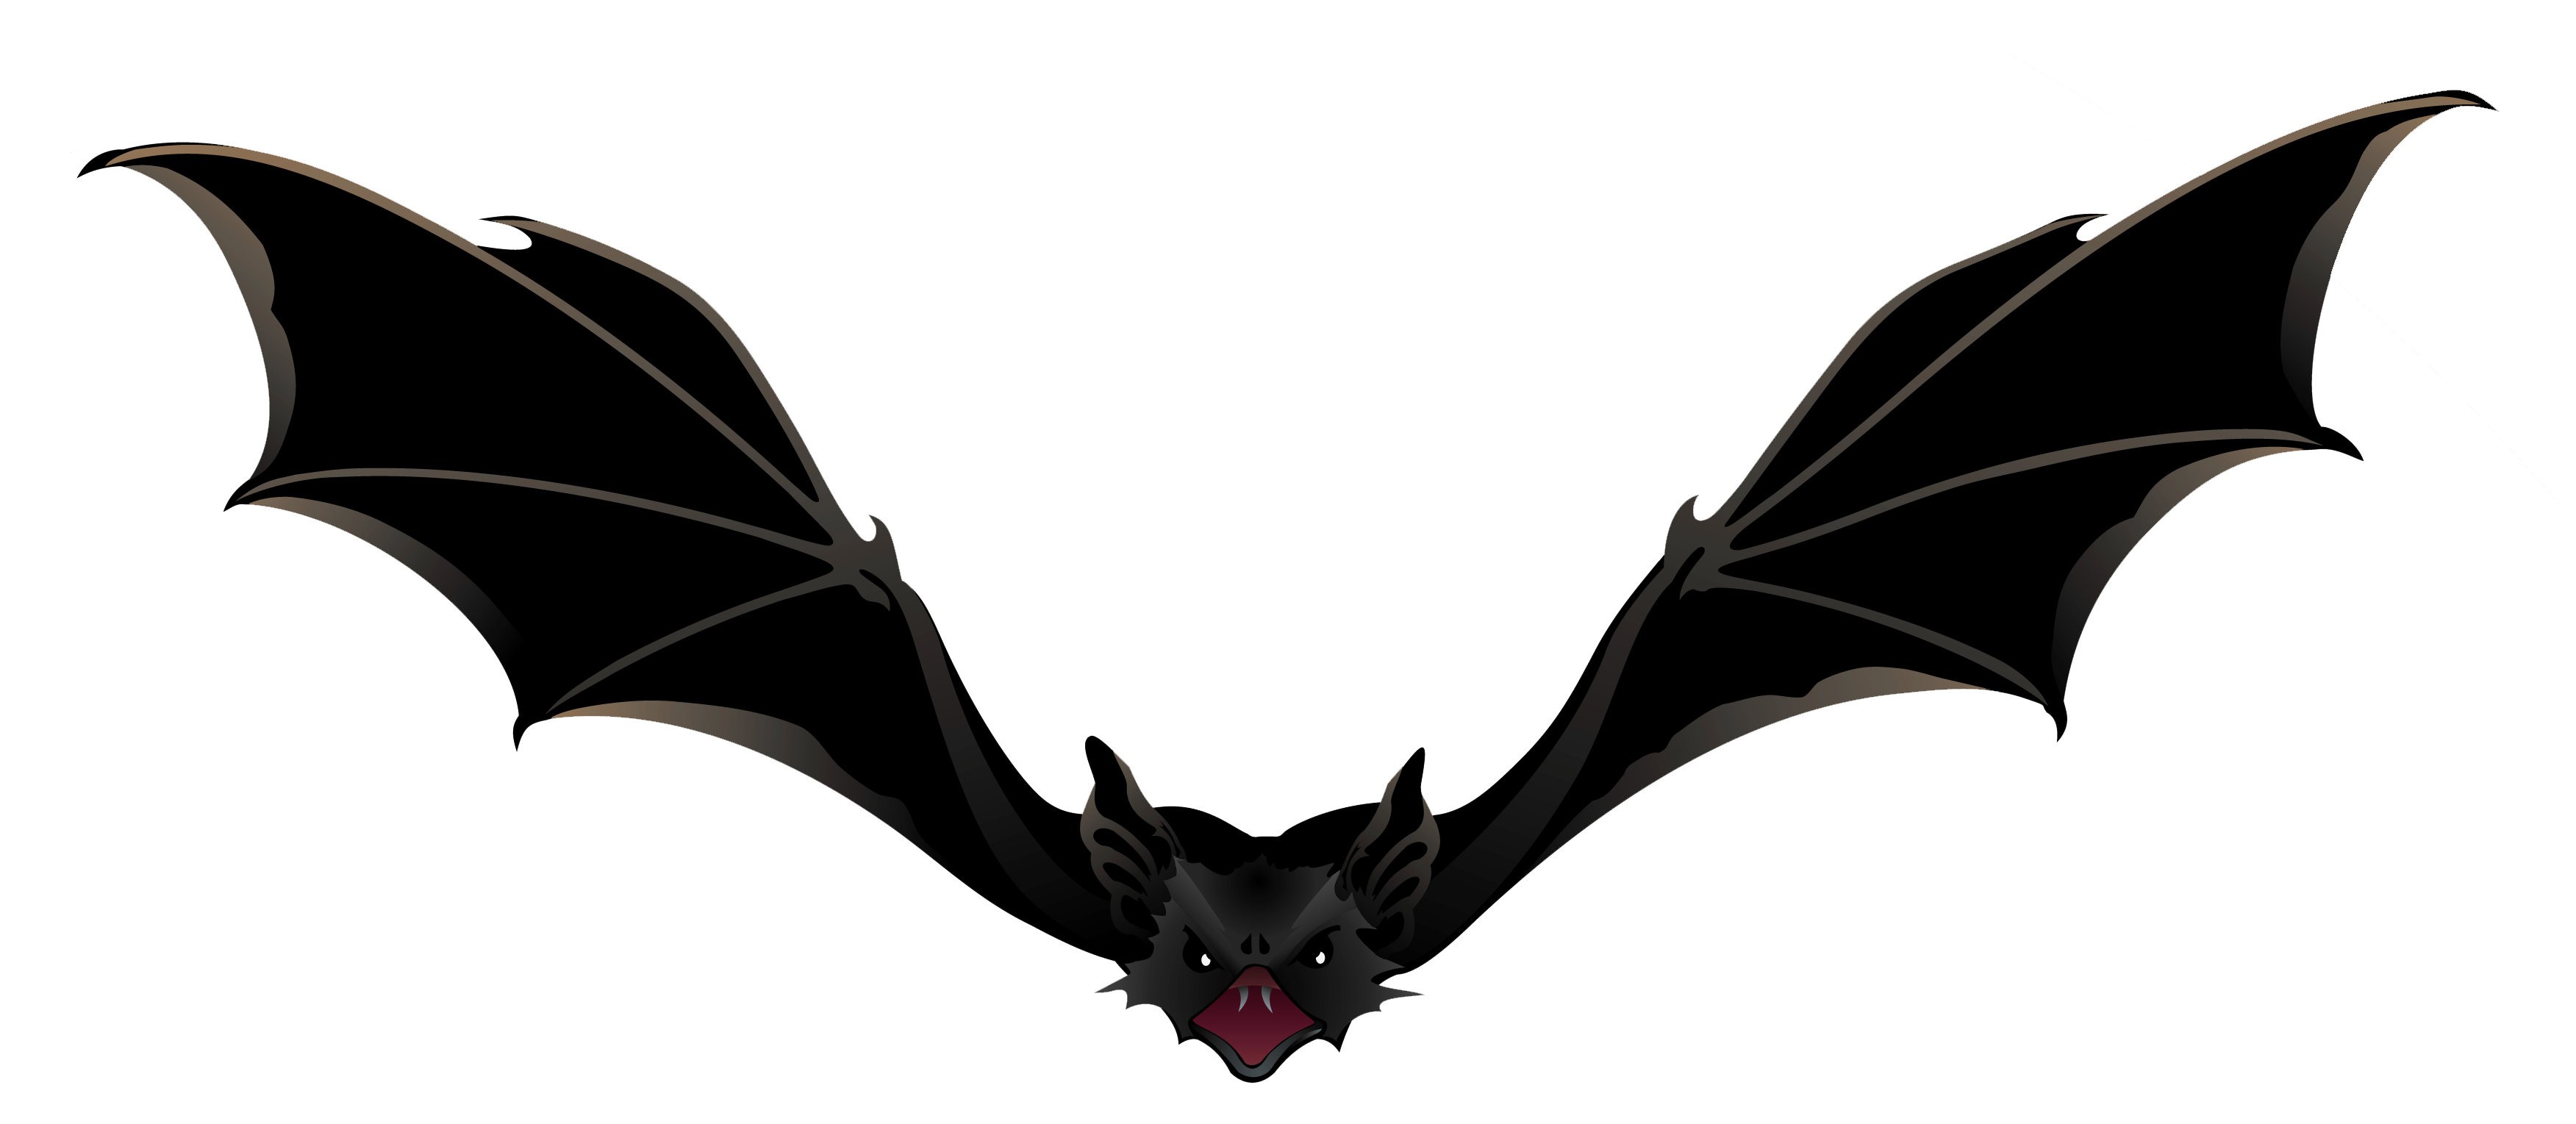 Bat clipart transparent background. Creepy png picture gallery